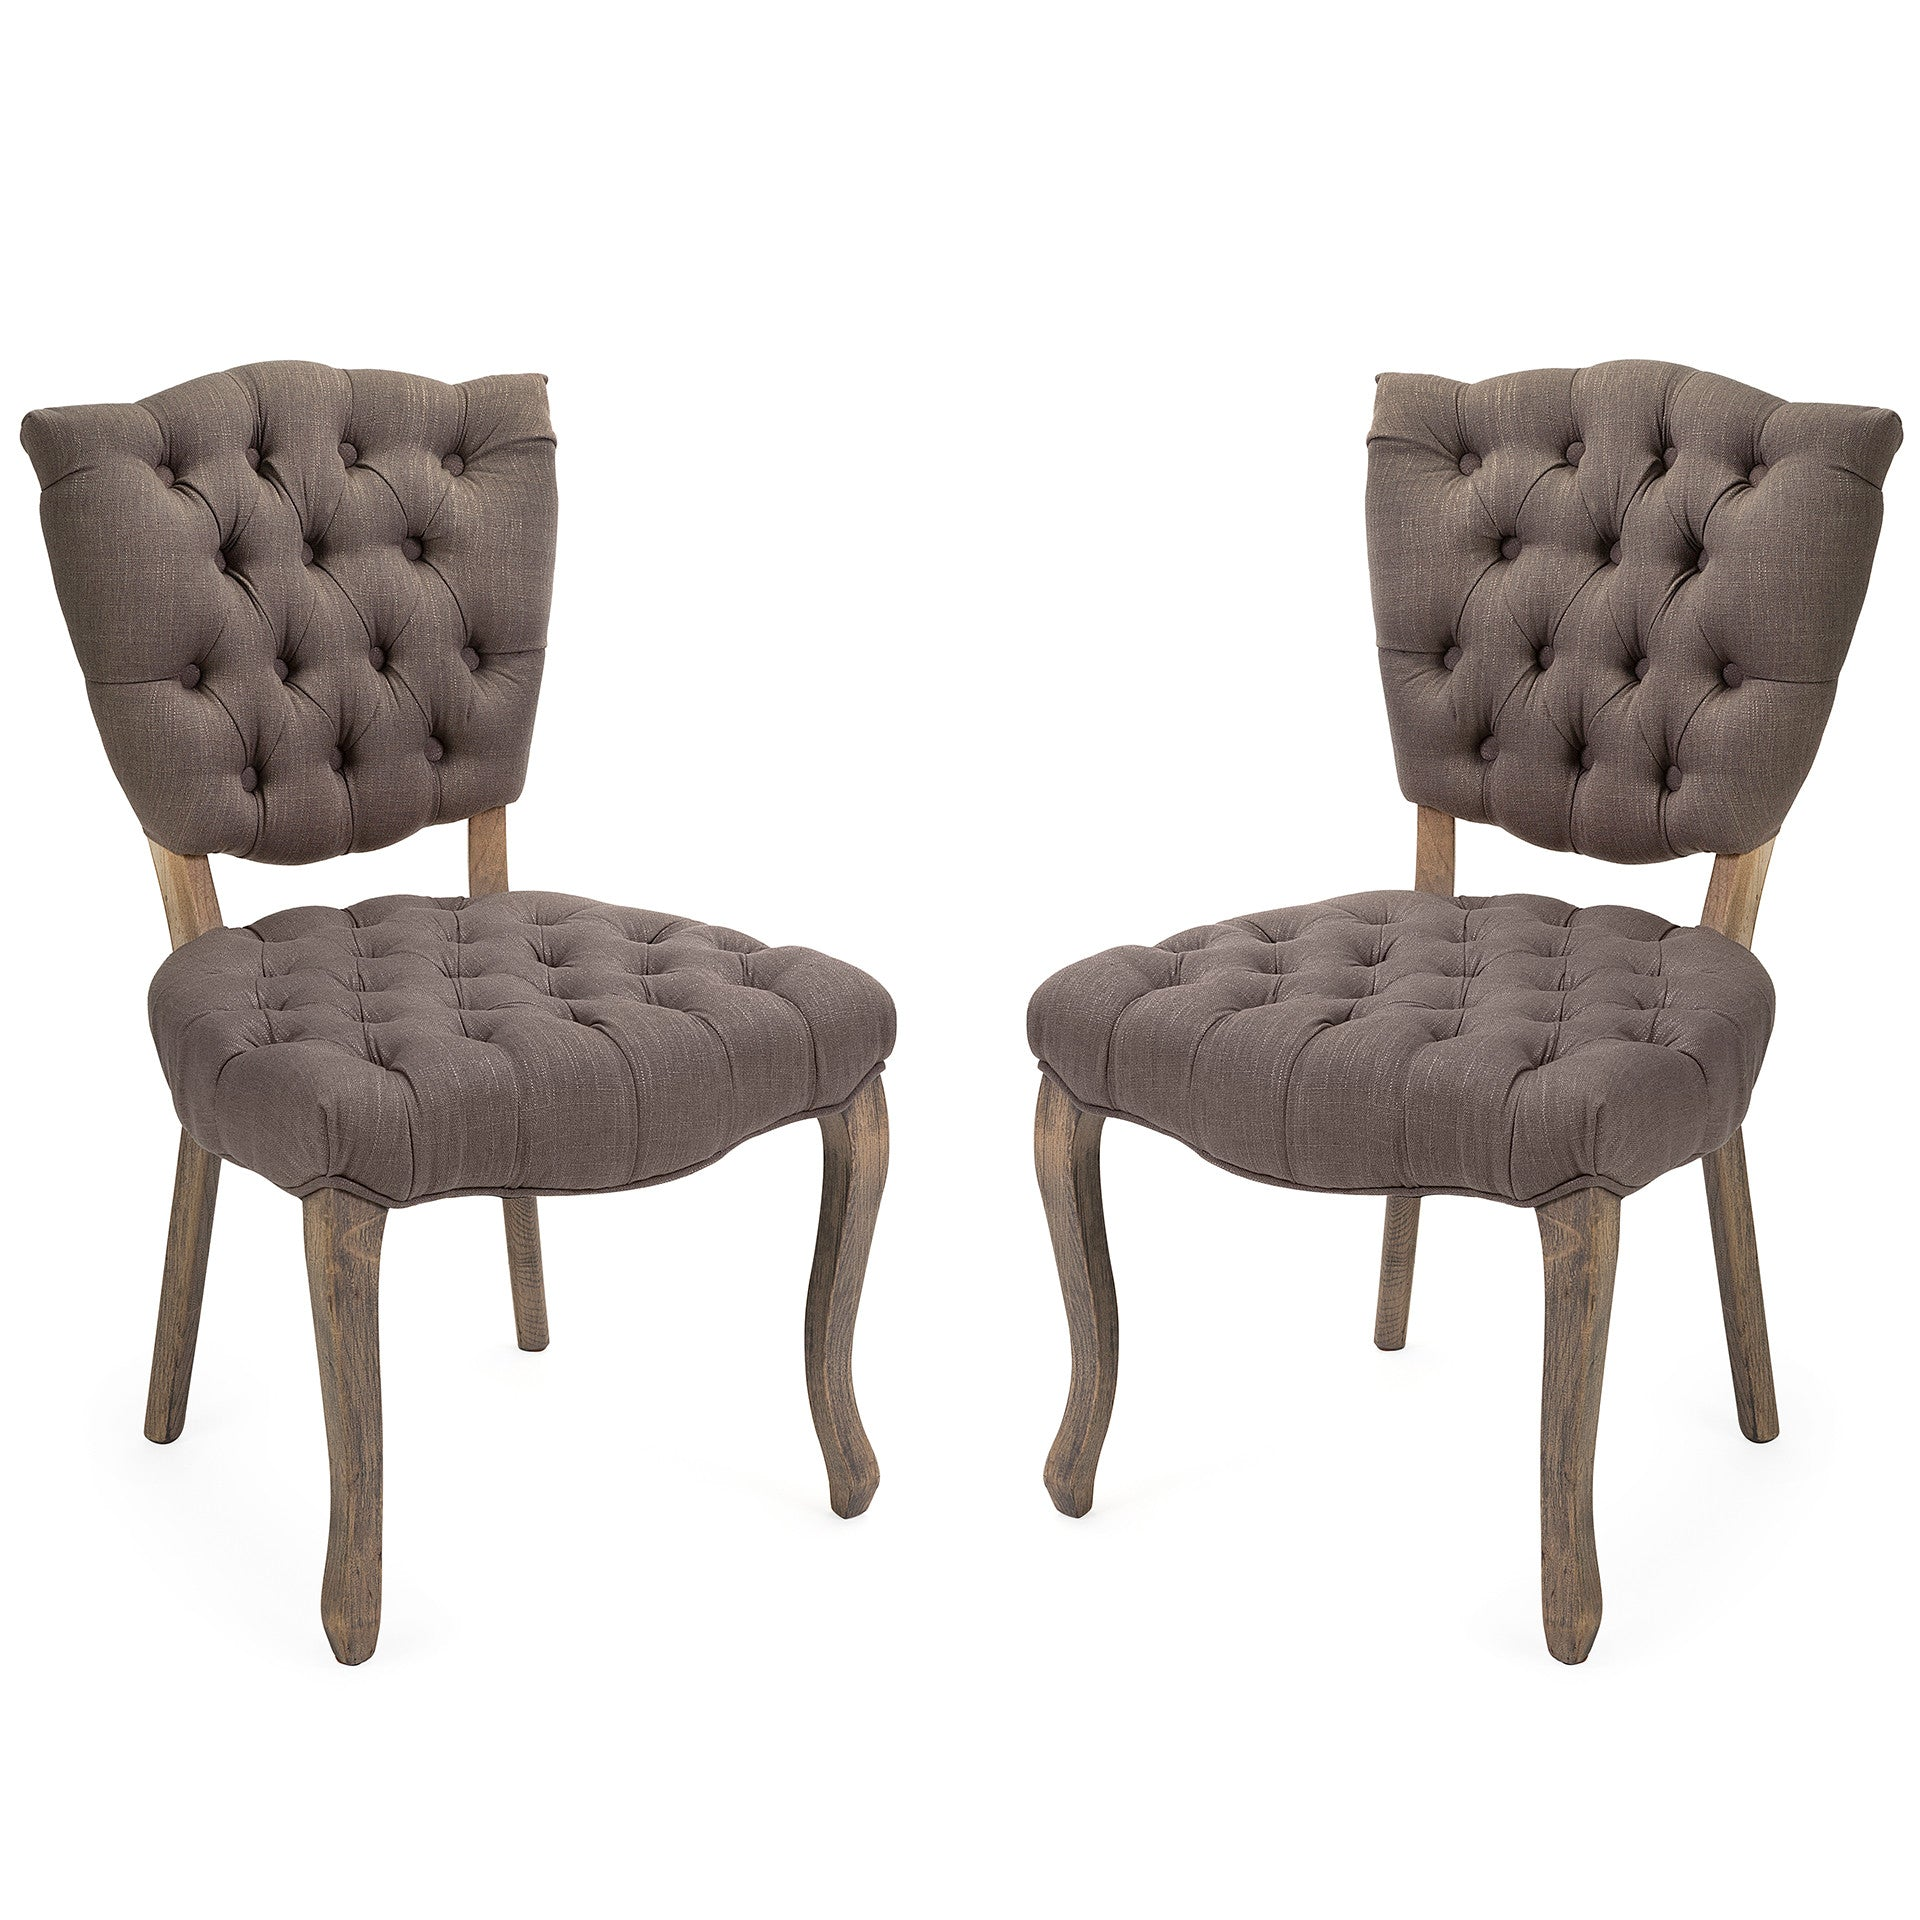 Gray Farmhouse Cottage Linen Chairs - Set of 2